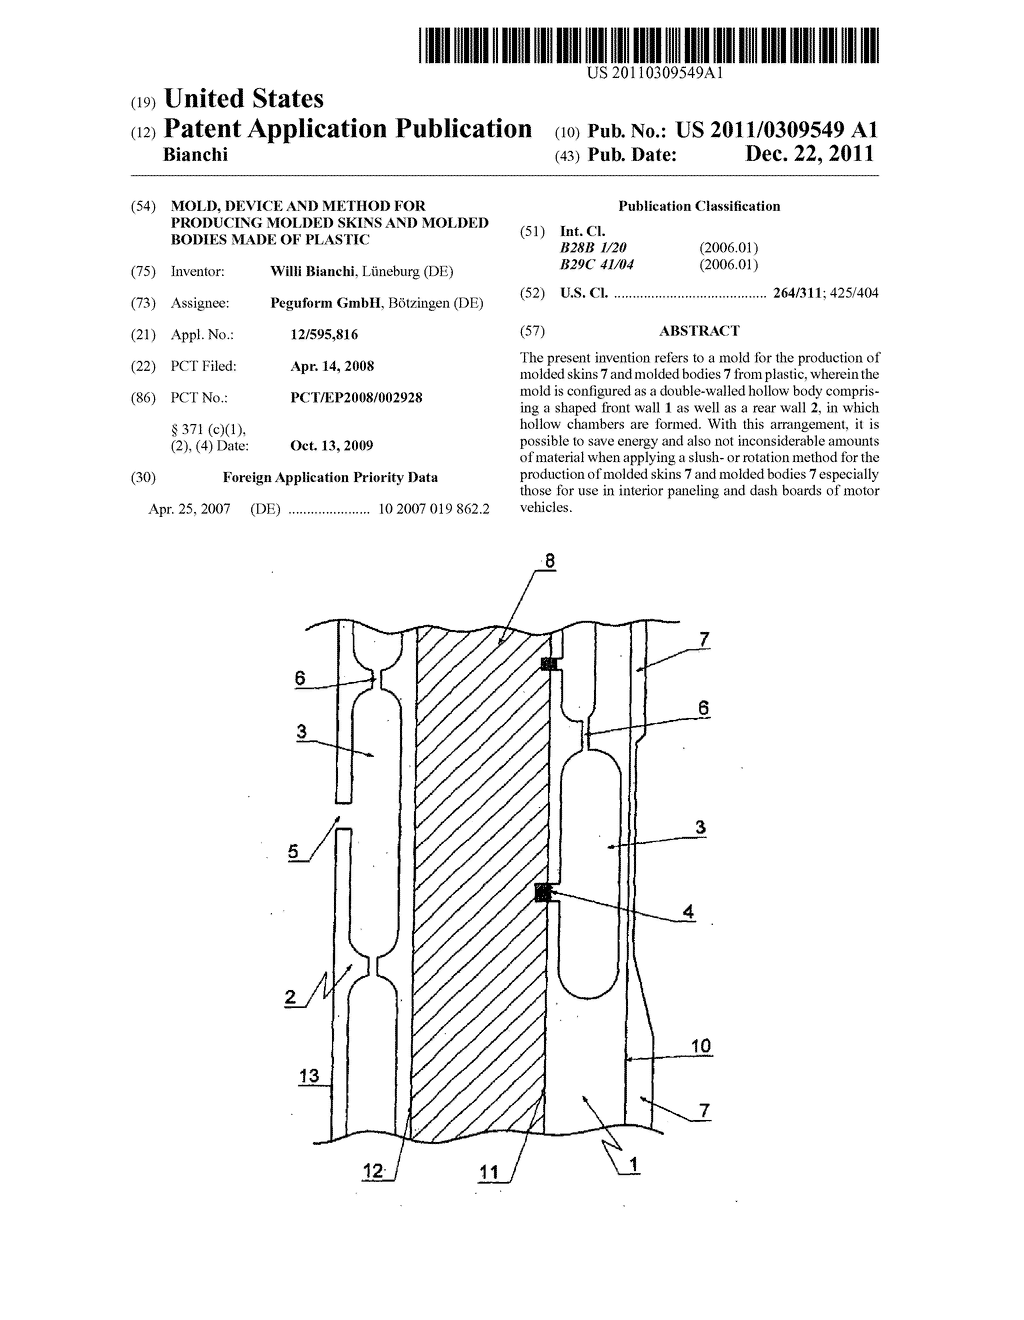 MOLD, DEVICE AND METHOD  FOR PRODUCING MOLDED SKINS AND MOLDED BODIES MADE     OF PLASTIC - diagram, schematic, and image 01